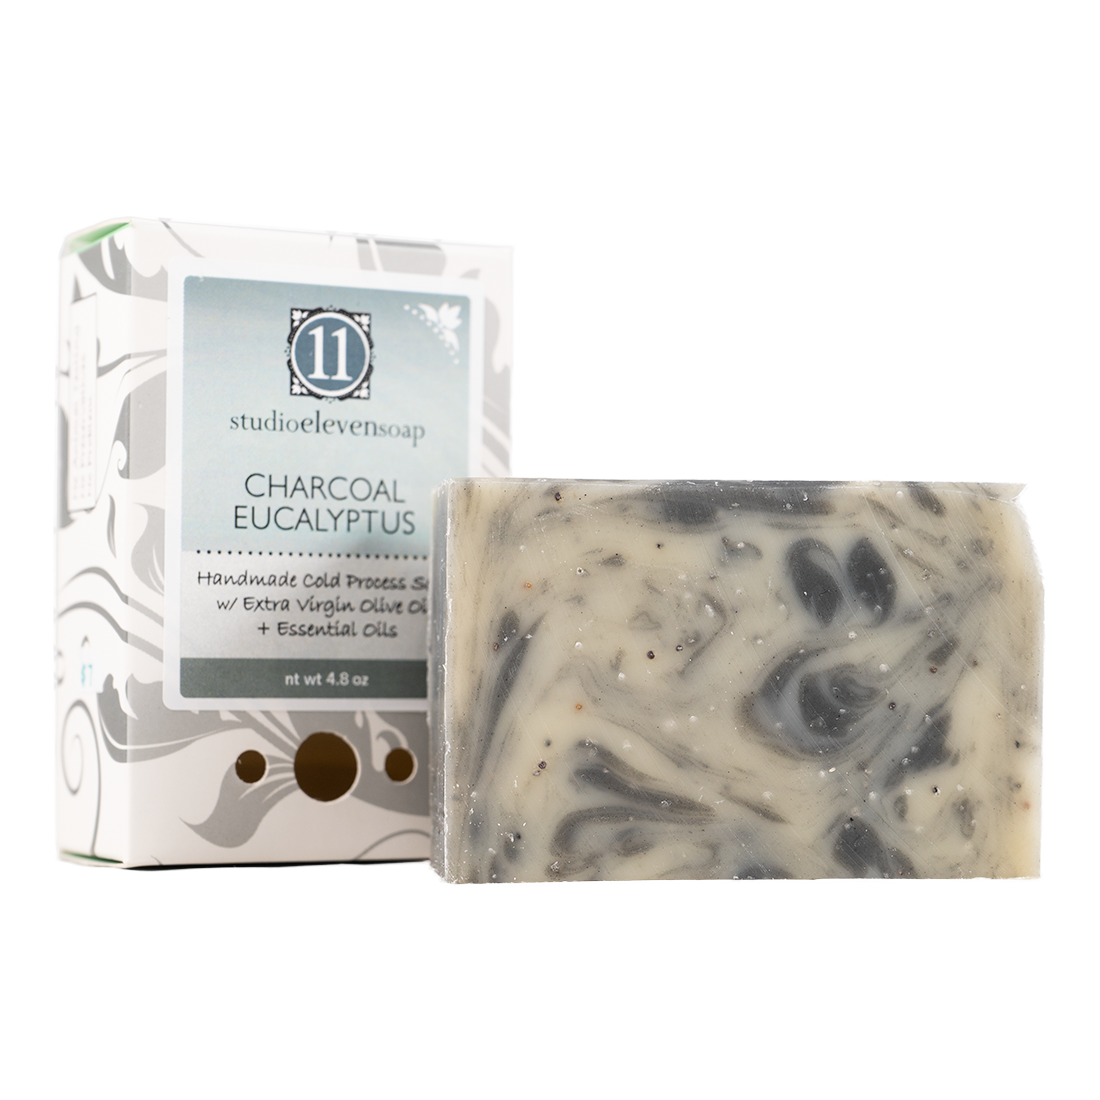 Handmade Cold Press Soap Charcoal Eucalyptus Scent